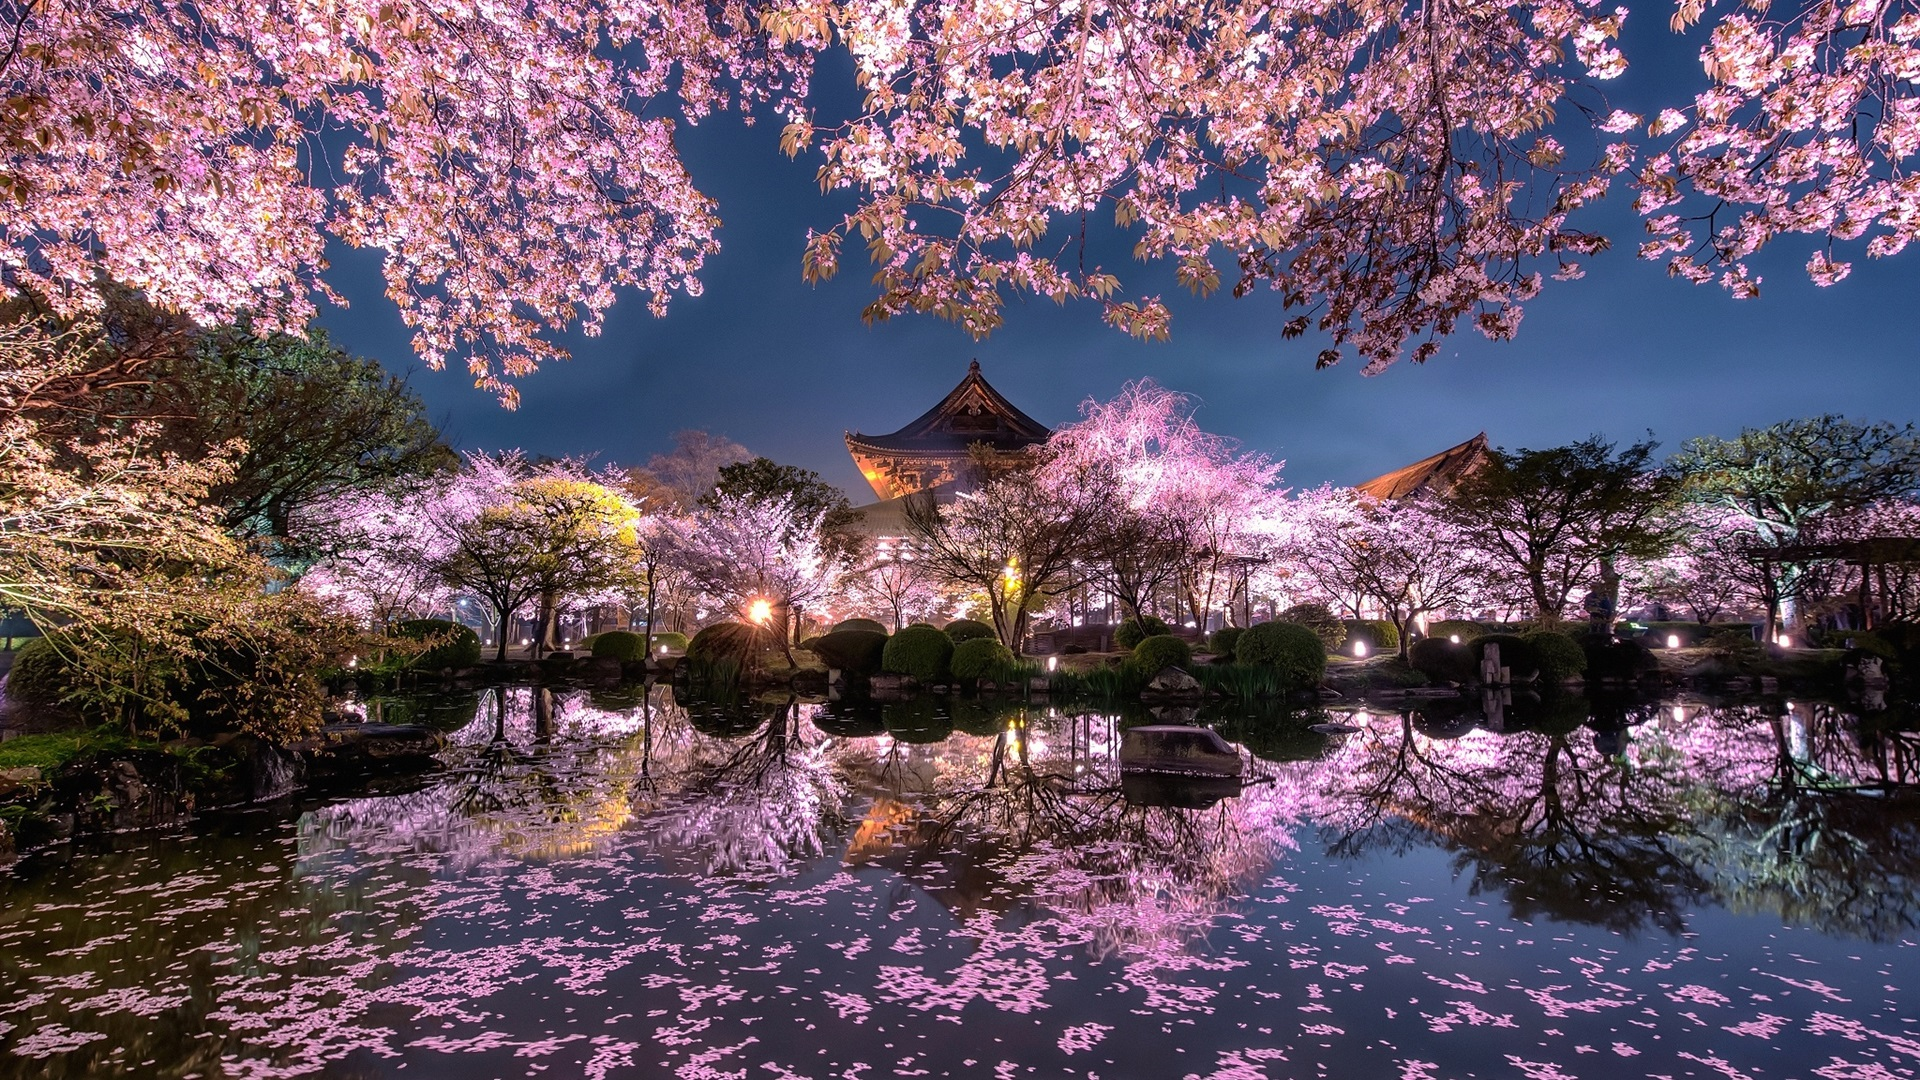 Wallpaper Japan Sakura Trees Pink Flowers Night Pond Temple Garden 1920x1200 Hd Picture Image